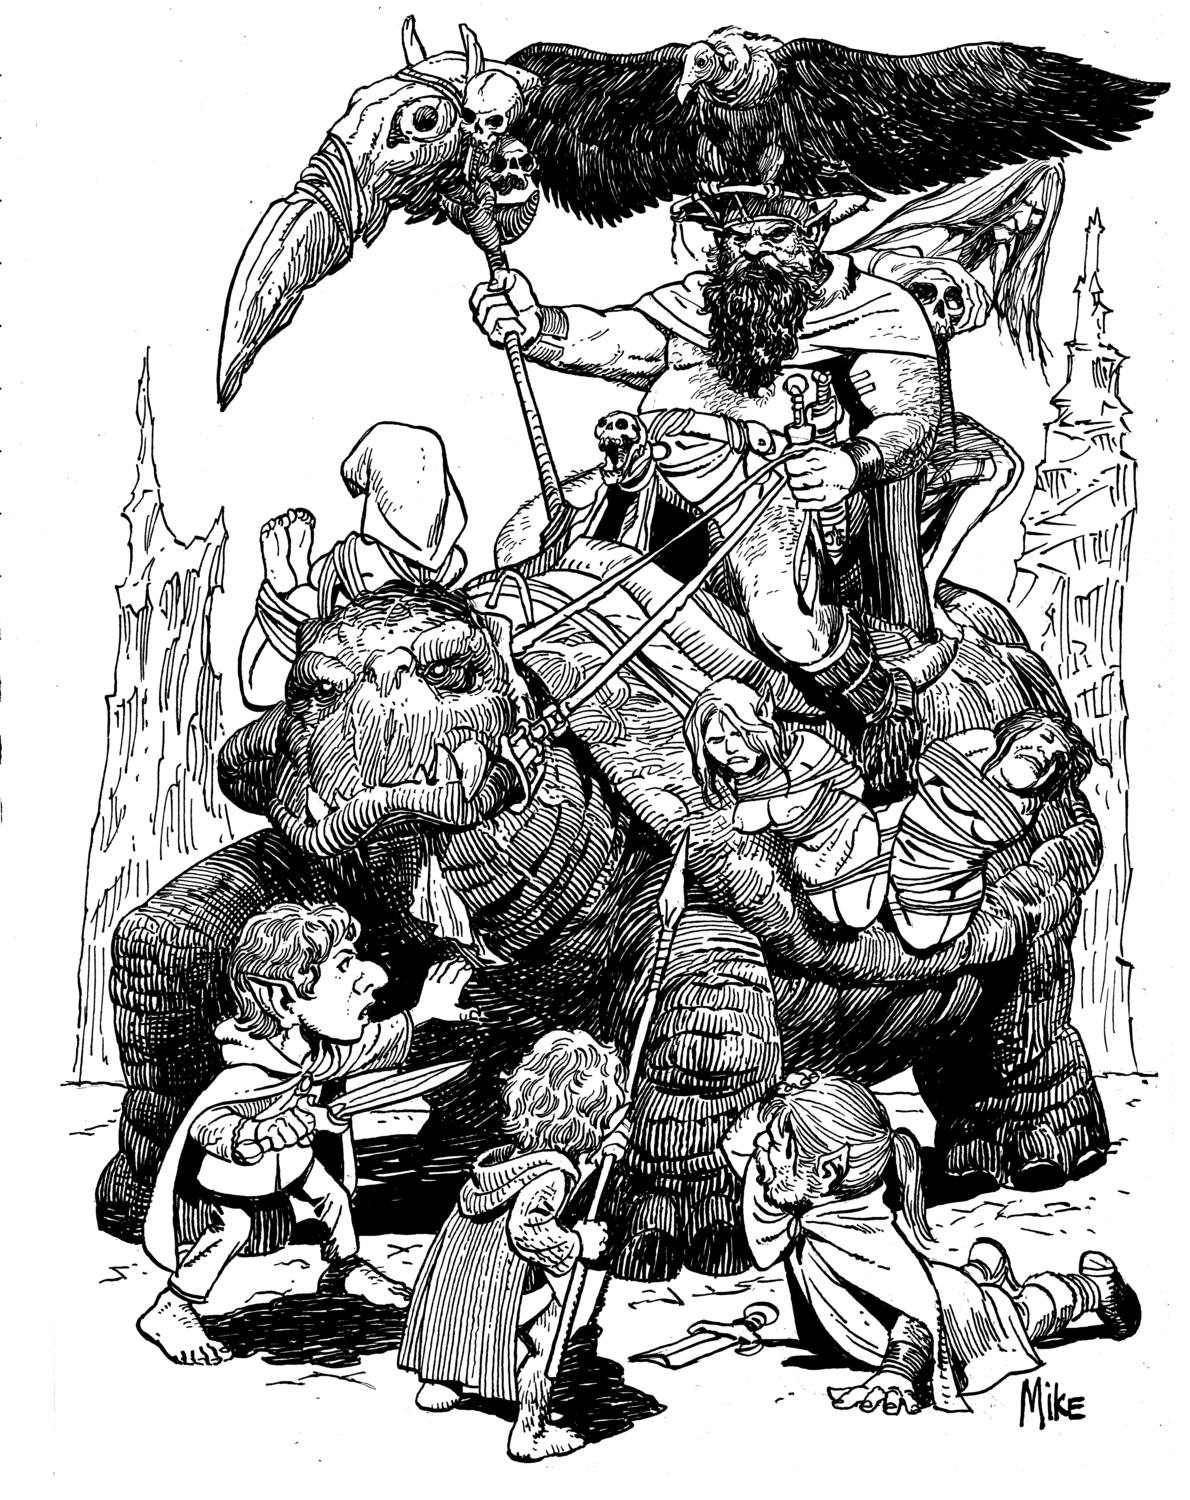 Turtle and Hobbits Artwork by Michael Manley